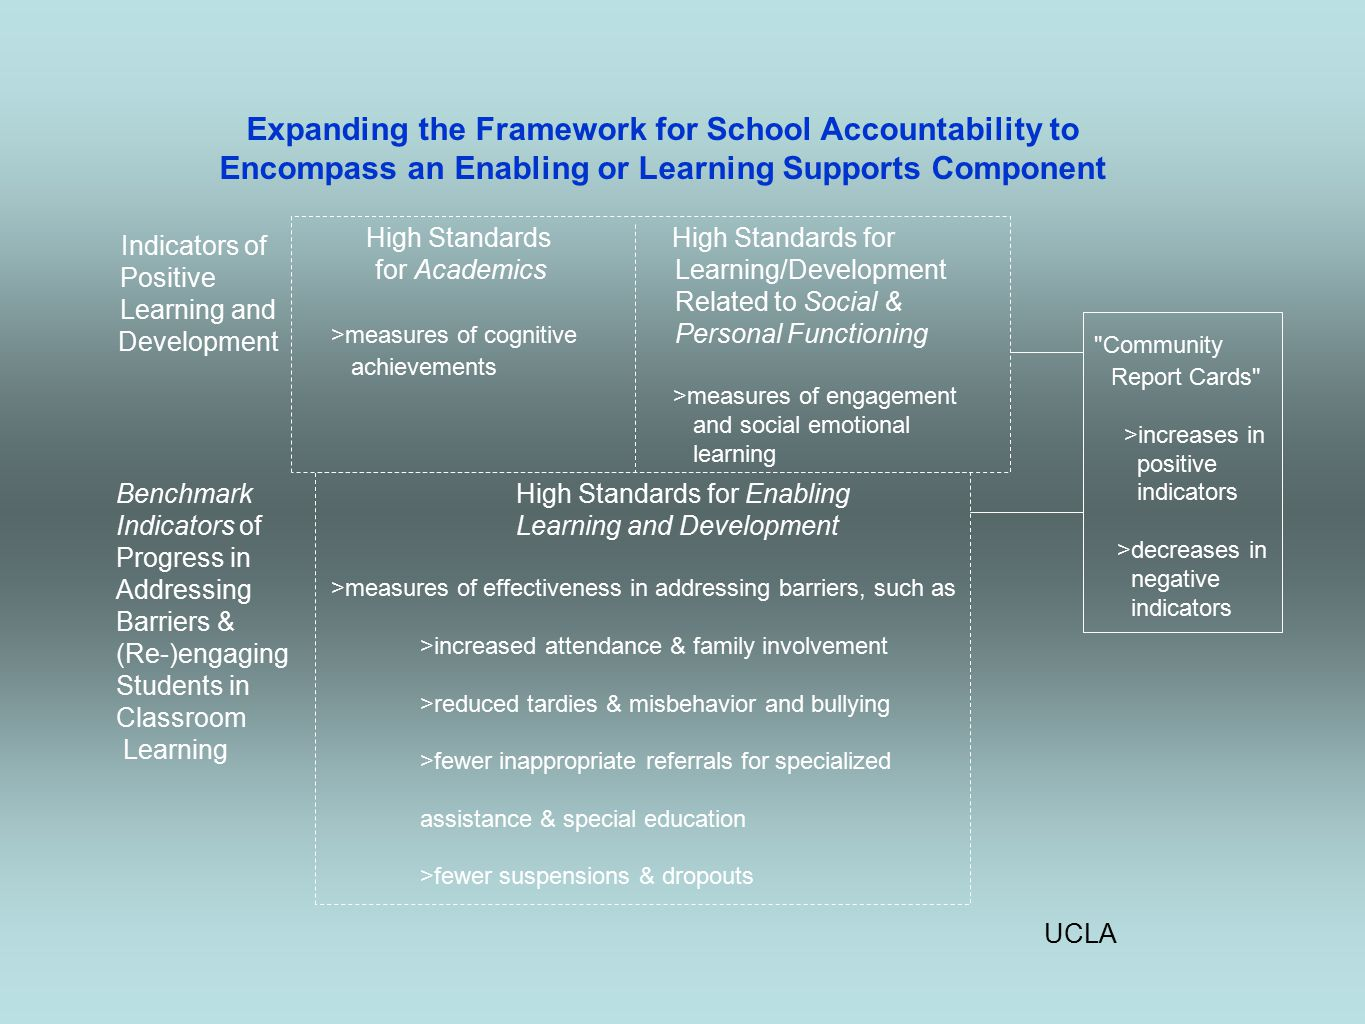 UCLA Expanding the Framework for School Accountability to Encompass an Enabling or Learning Supports Component Indicators of Positive Learning and Development High Standards for Academics >measures of cognitive achievements High Standards for Learning/Development Related to Social & Personal Functioning >measures of engagement and social emotional learning Community Report Cards >increases in positive indicators >decreases in negative indicators Benchmark Indicators of Progress in Addressing Barriers & (Re-)engaging Students in Classroom Learning High Standards for Enabling Learning and Development >measures of effectiveness in addressing barriers, such as >increased attendance & family involvement >reduced tardies & misbehavior and bullying >fewer inappropriate referrals for specialized assistance & special education >fewer suspensions & dropouts